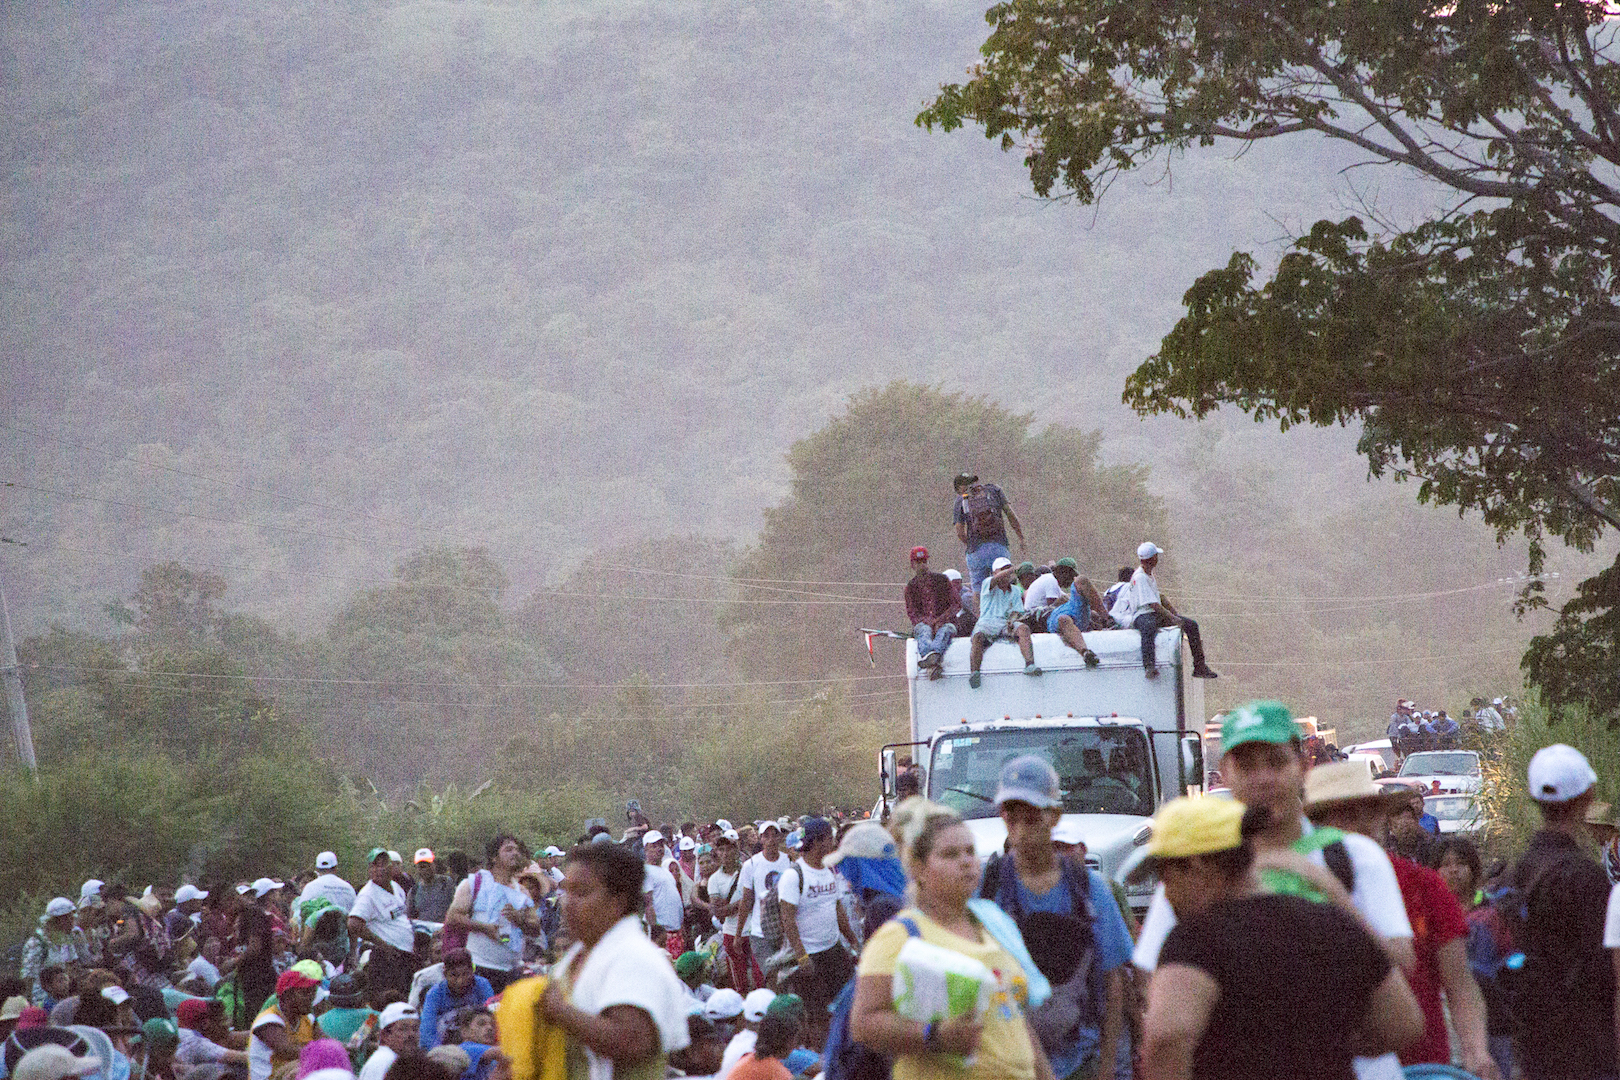 The migrant caravan makes it's way through Chiapas, Mexico (Jika Gonzales/VICE News.)